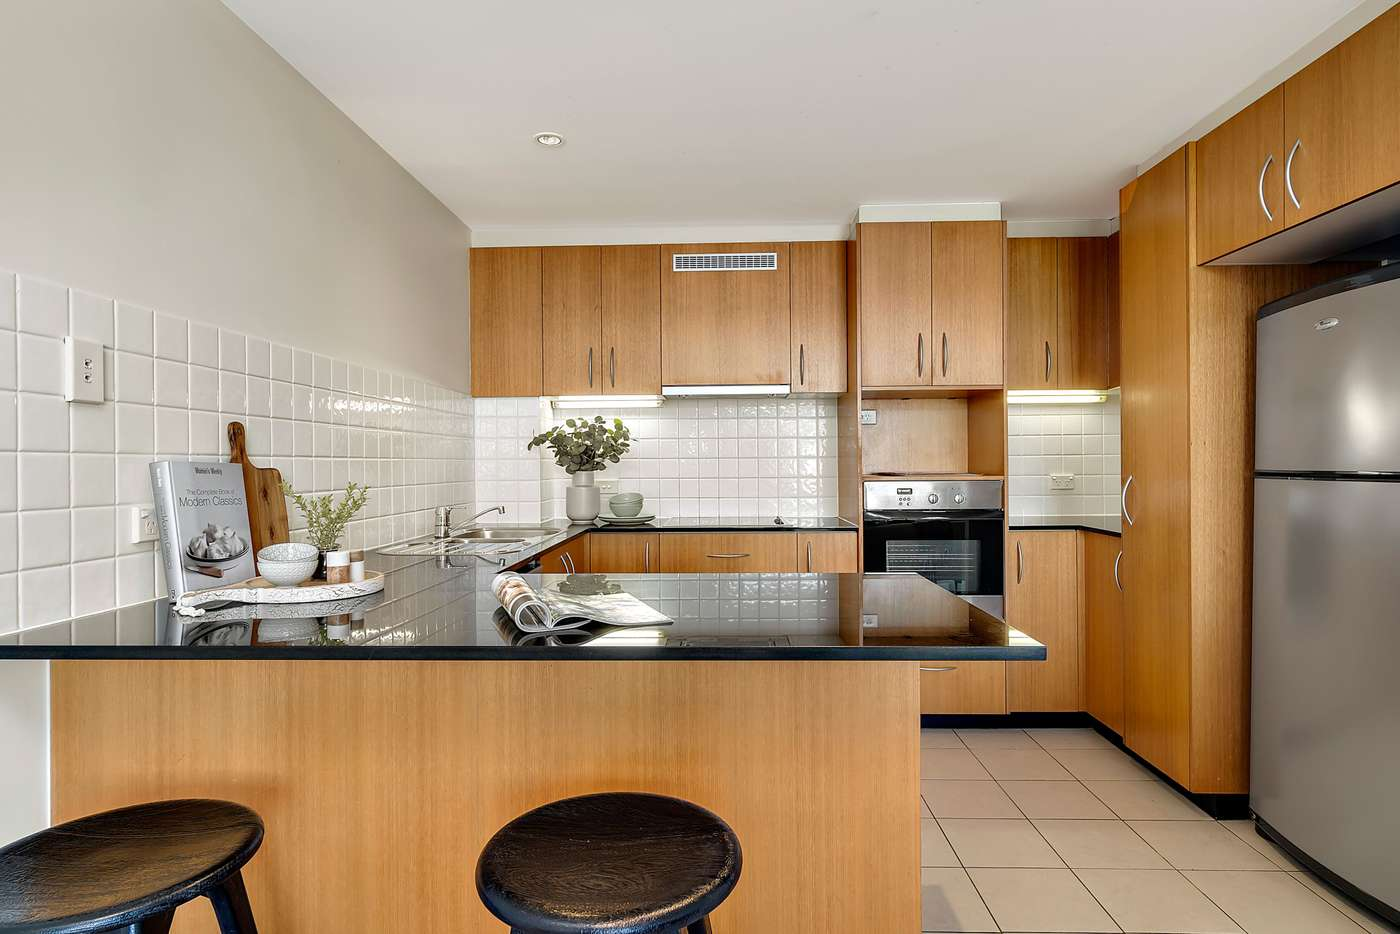 Sixth view of Homely house listing, 28/12 National Circuit, Barton ACT 2600